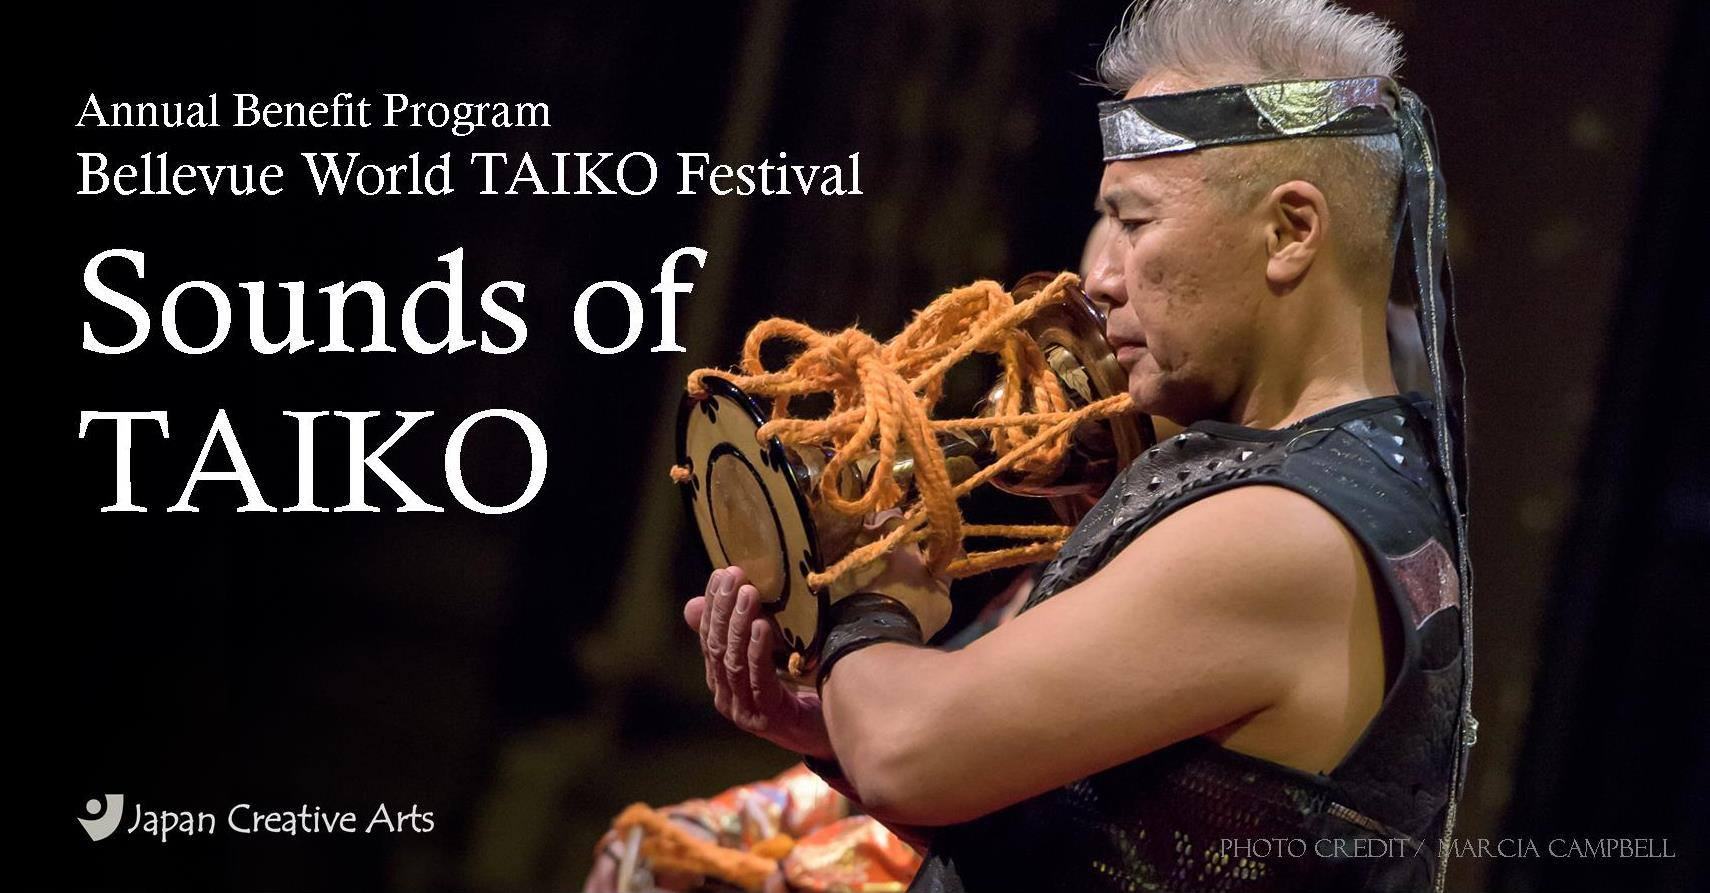 Sounds of TAIKO / Bellevue World TAIKO Festival